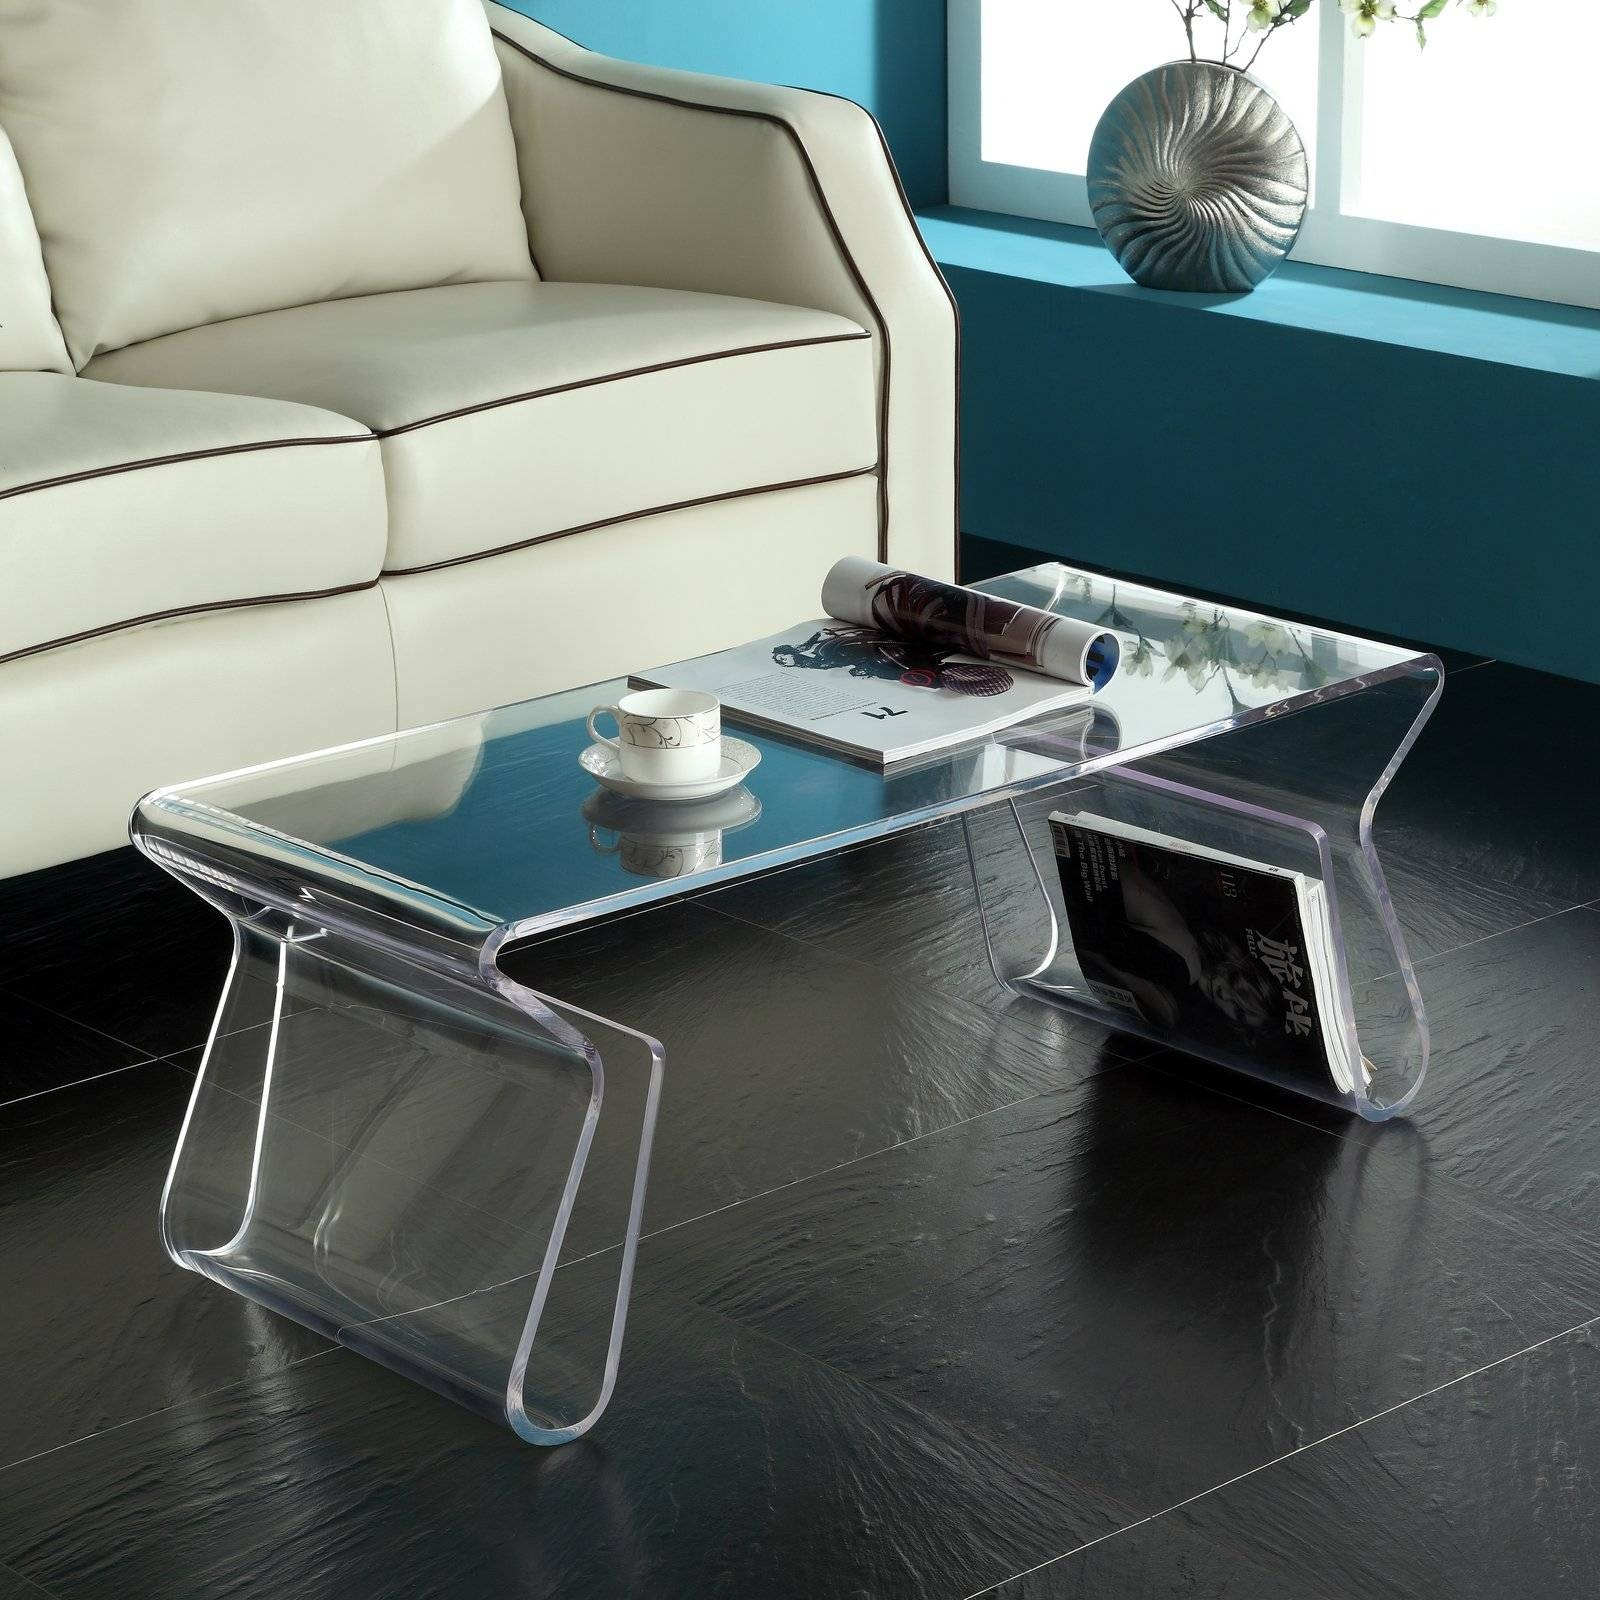 Modway Rectangle Clear Acrylic Coffee Table With Magazine Holder regarding Acrylic Coffee Tables With Magazine Rack (Image 25 of 30)